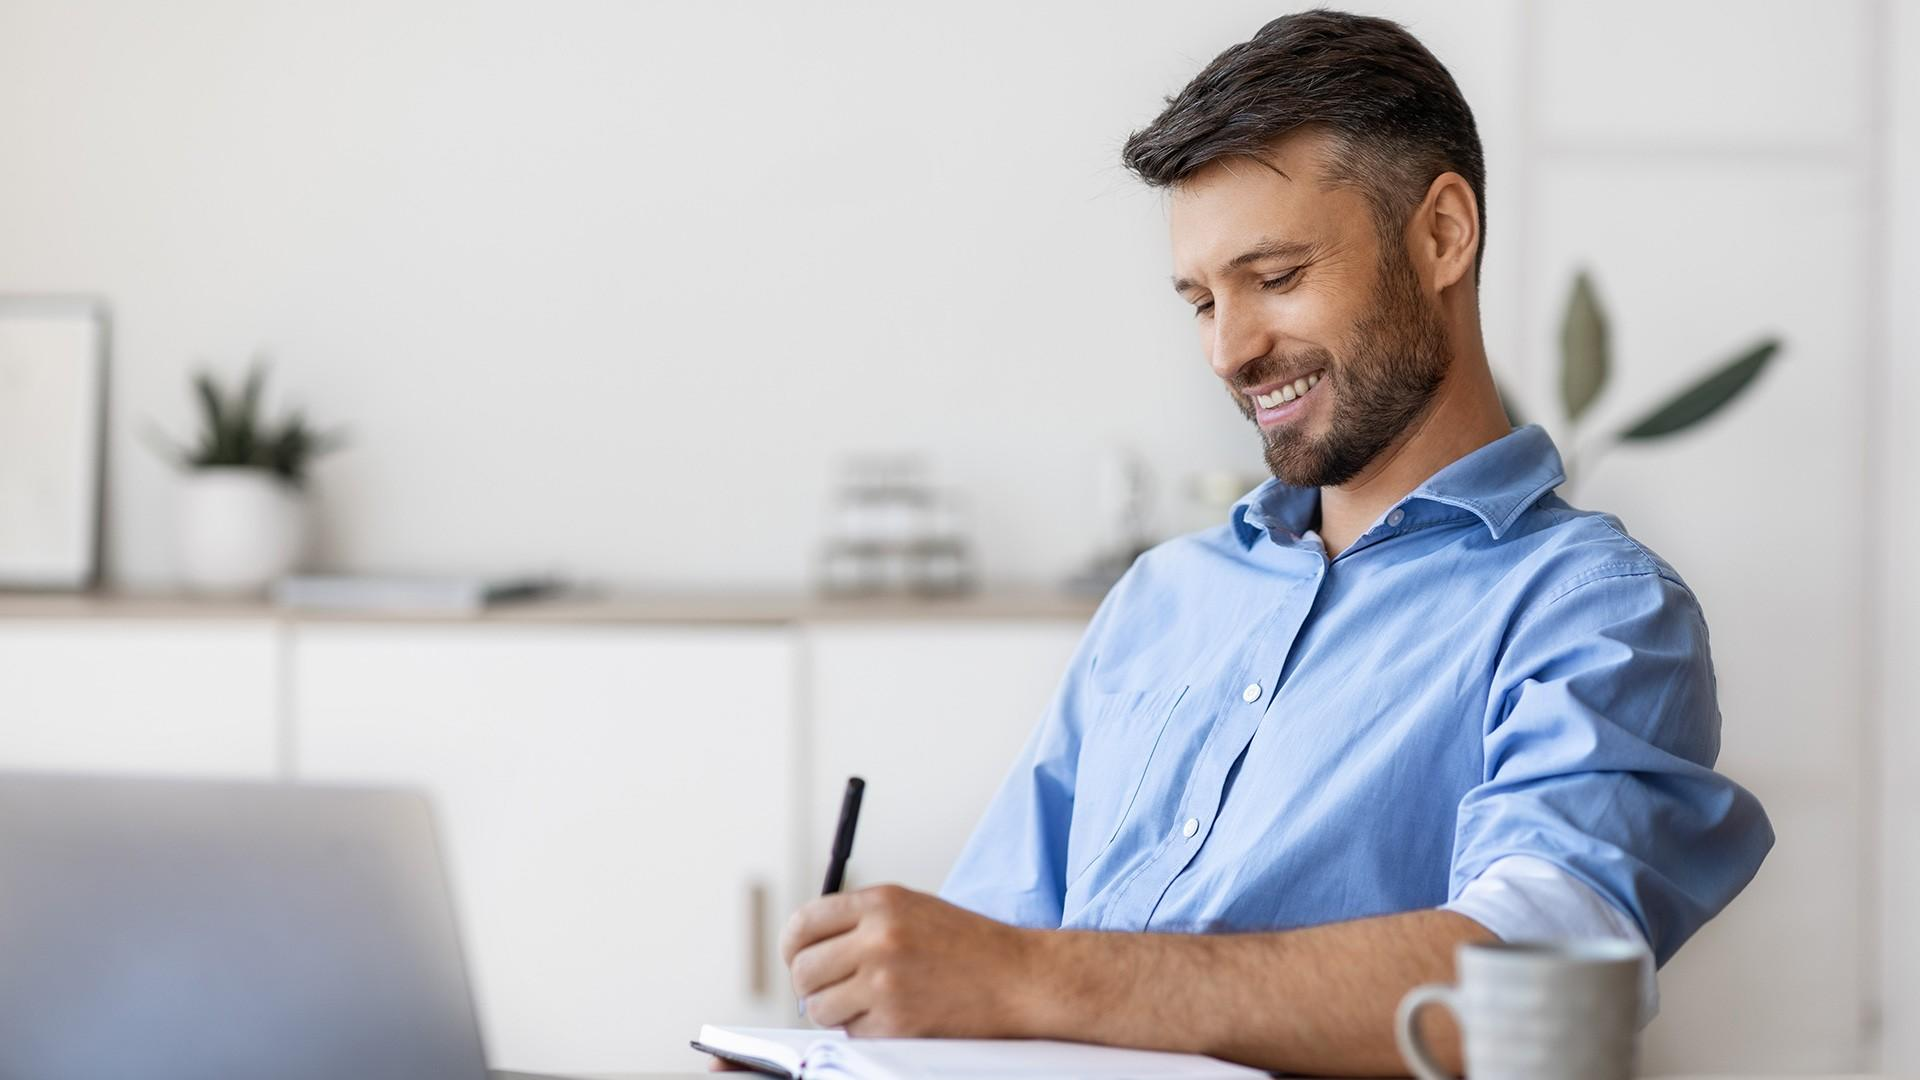 Happy Man at Desk writing in a journal